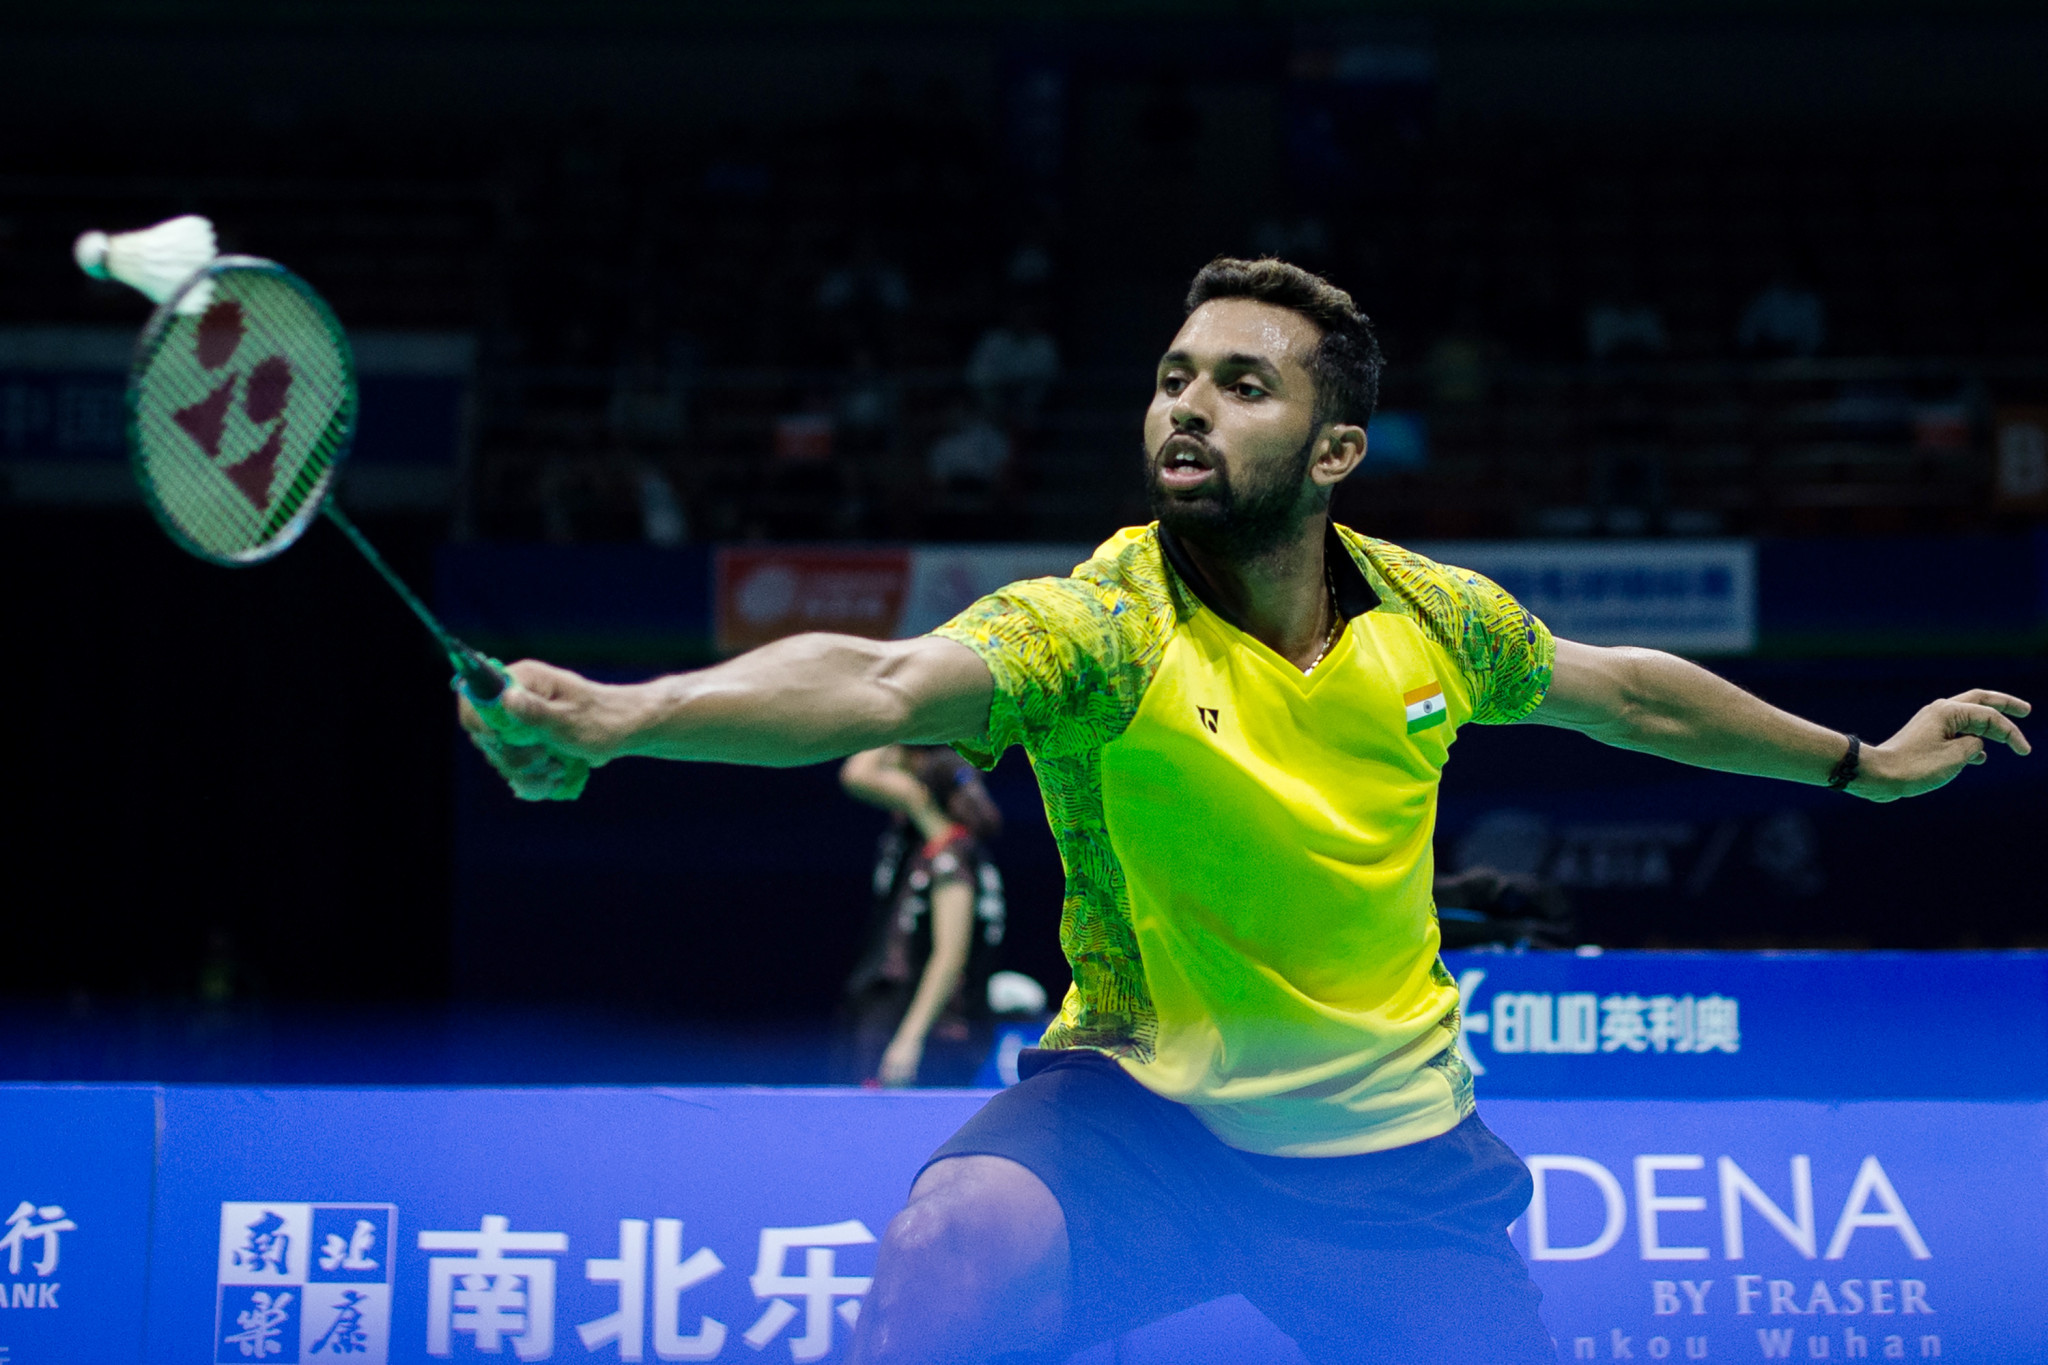 Prannoy Kumar will not defend his US Open Badminton Championships title after he decided to skip the event ©Getty Images